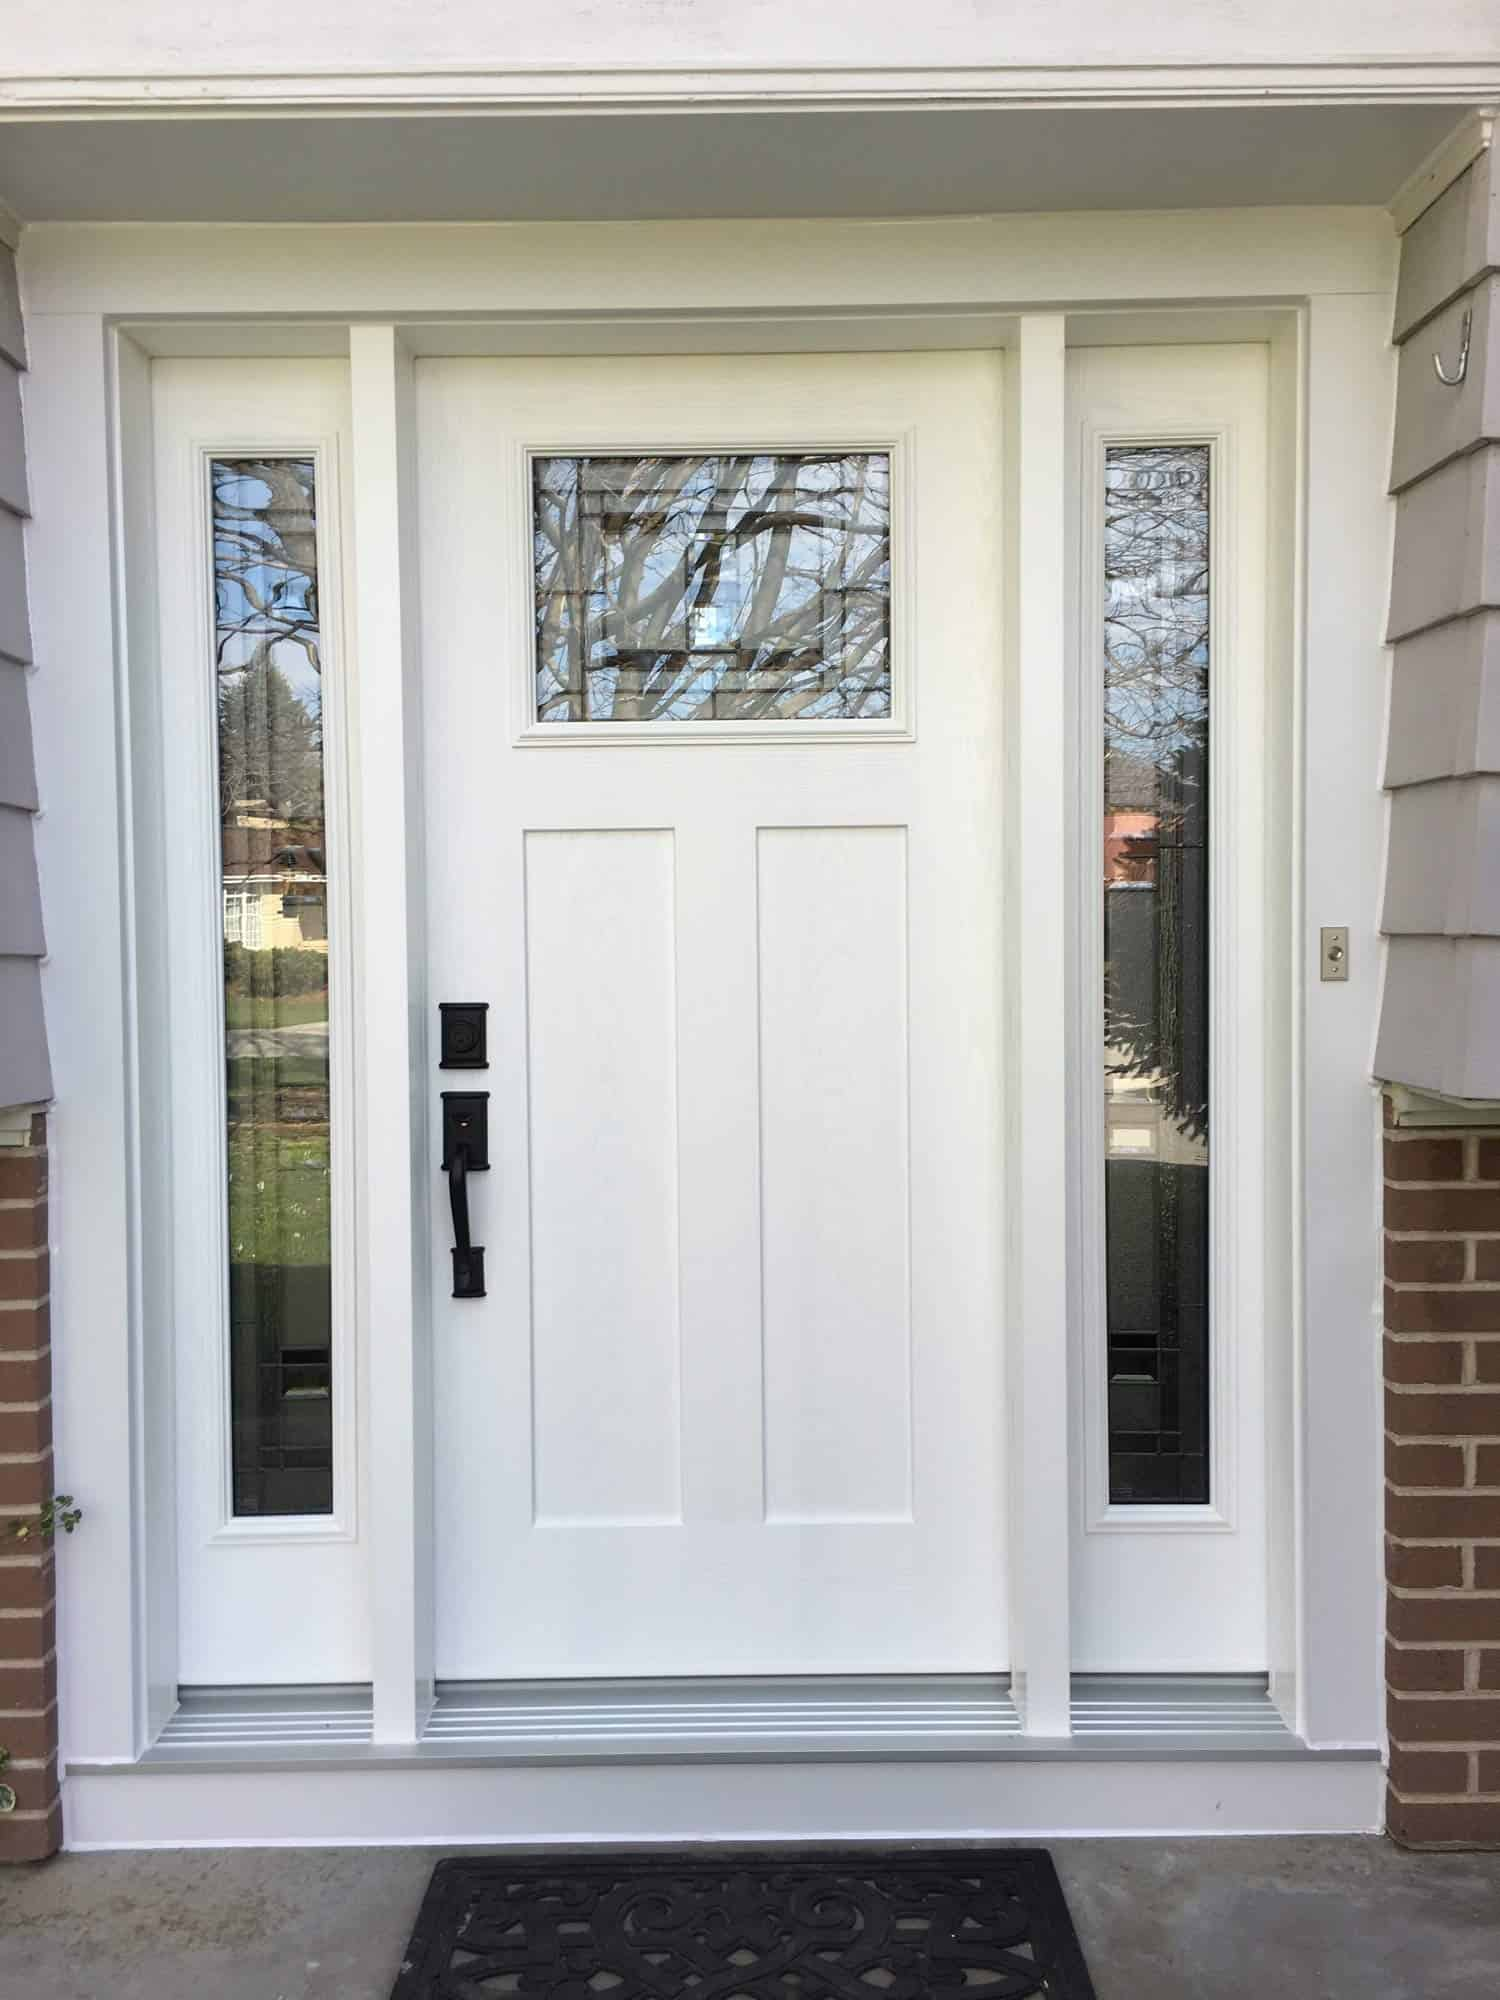 New door with side windows